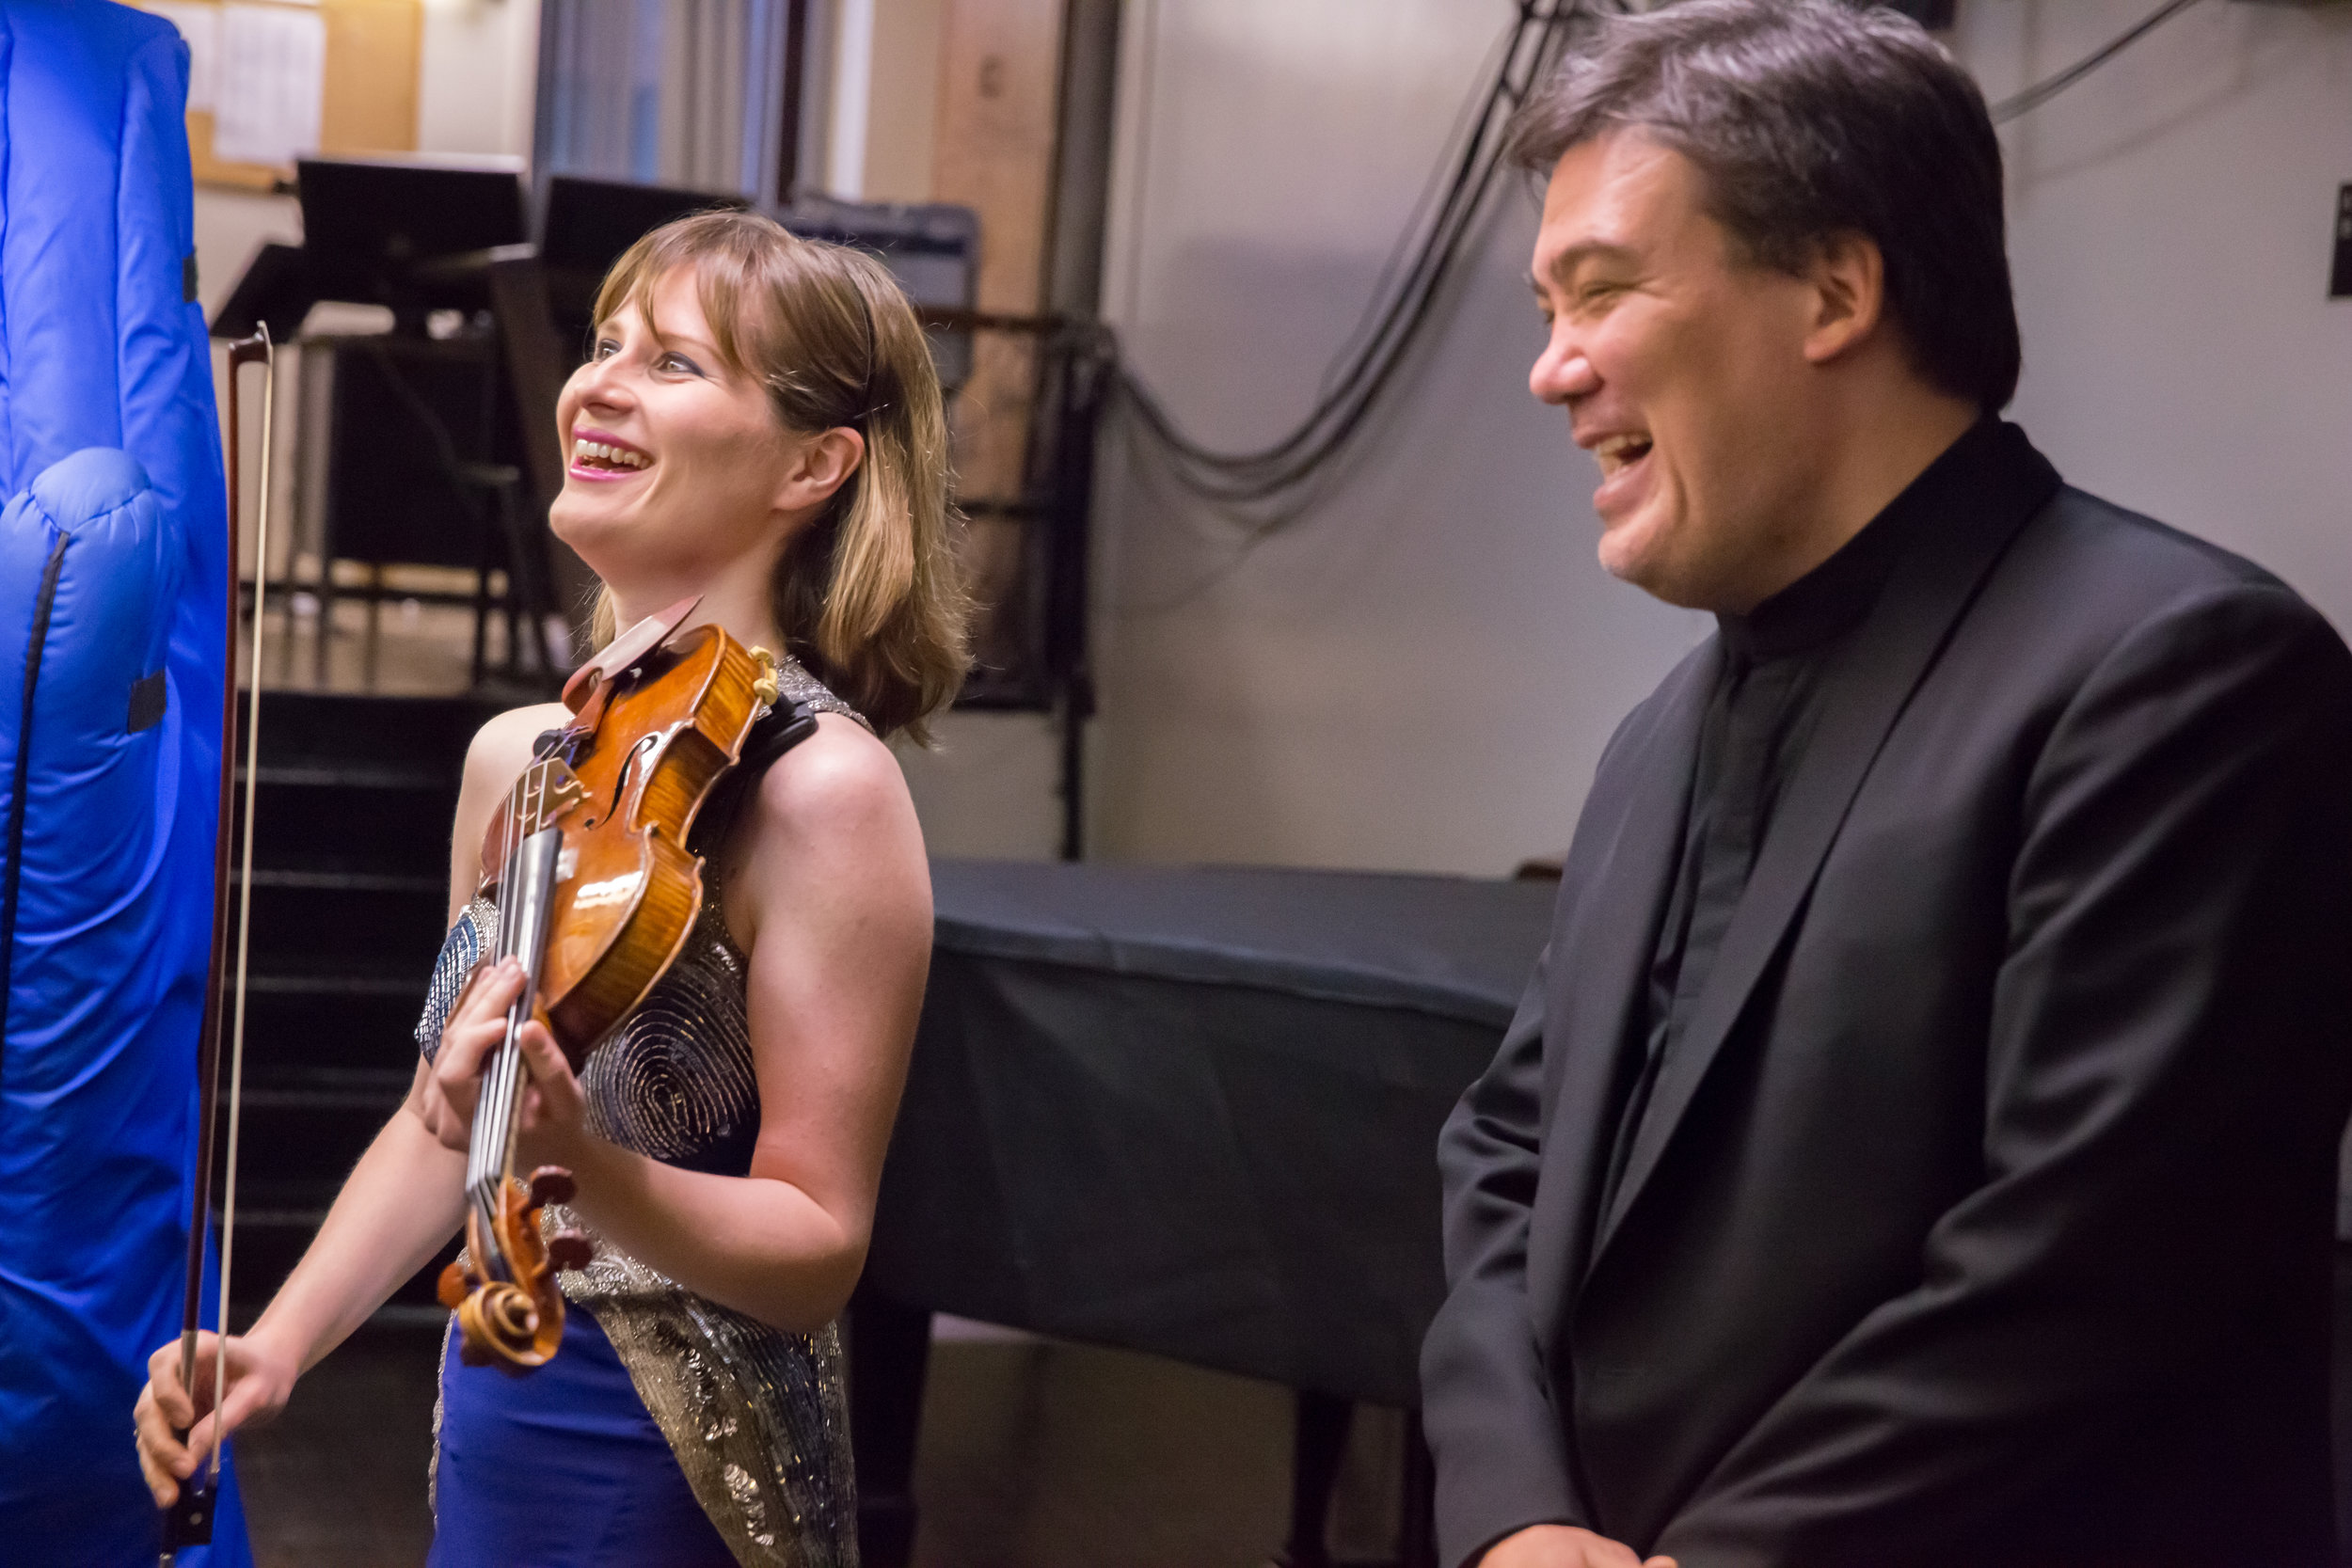 During her residency (2014–15) violinist Lisa Batiashvili gave an acclaimed recital and performed concertos by Brahms and Barber, as well as a program that coupled J.S. Bach's Concerto for Violin and Oboe with the U.S. Premiere–New York Philharmonic Co-Commission for the same instruments, written by Thierry Escaich for her and her husband, oboist François Leleux.